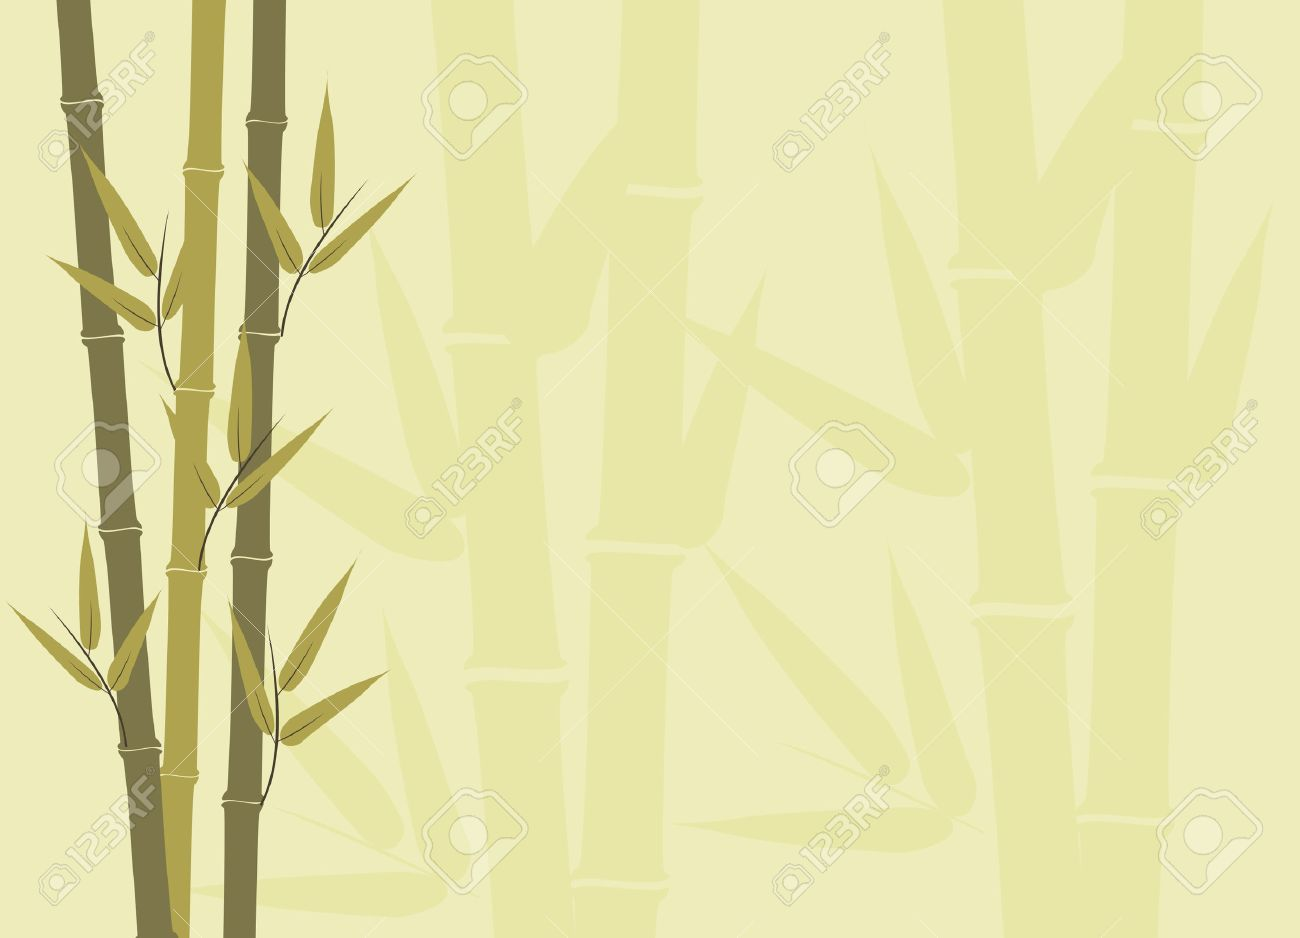 Illustration of bamboo stalks with subtle larger subtle stalks in background Stock Vector - 4010780